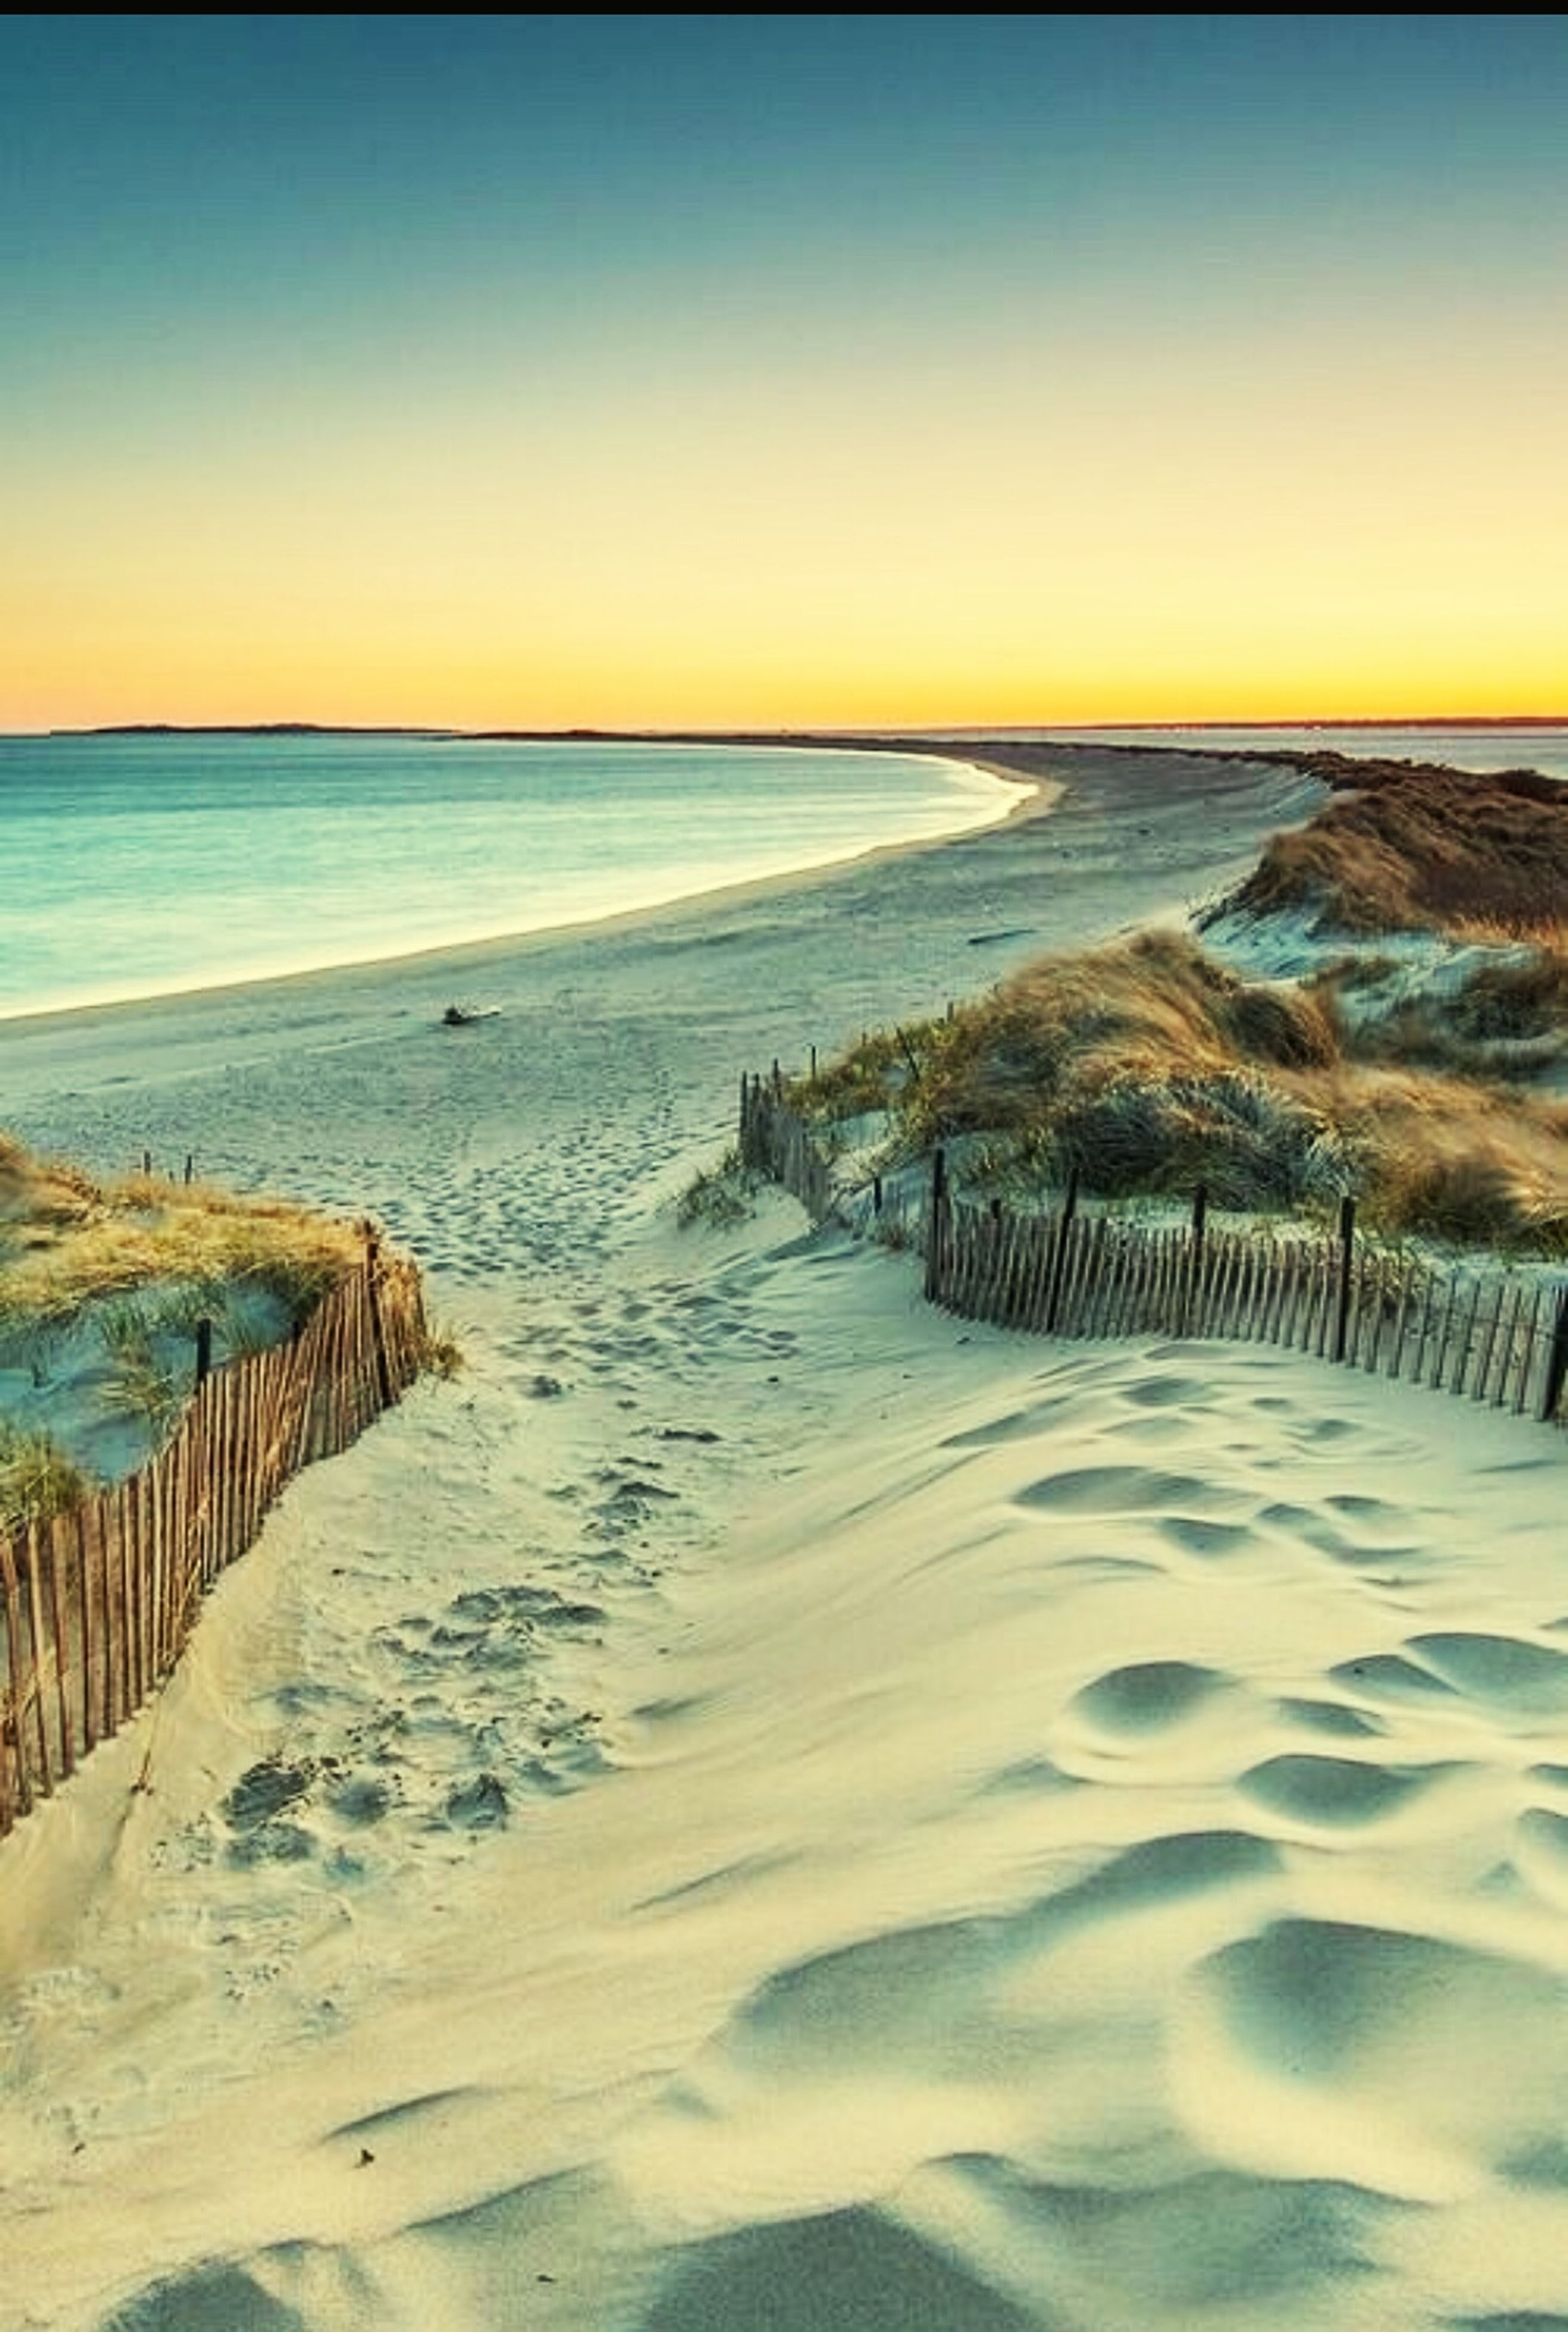 sea, beach, horizon over water, water, scenics, sand, sunset, tranquil scene, tranquility, beauty in nature, shore, idyllic, clear sky, non-urban scene, nature, tourism, vacations, travel destinations, calm, outdoors, coastline, sky, summer, wave, majestic, blue, boardwalk, remote, no people, seascape, coastal feature